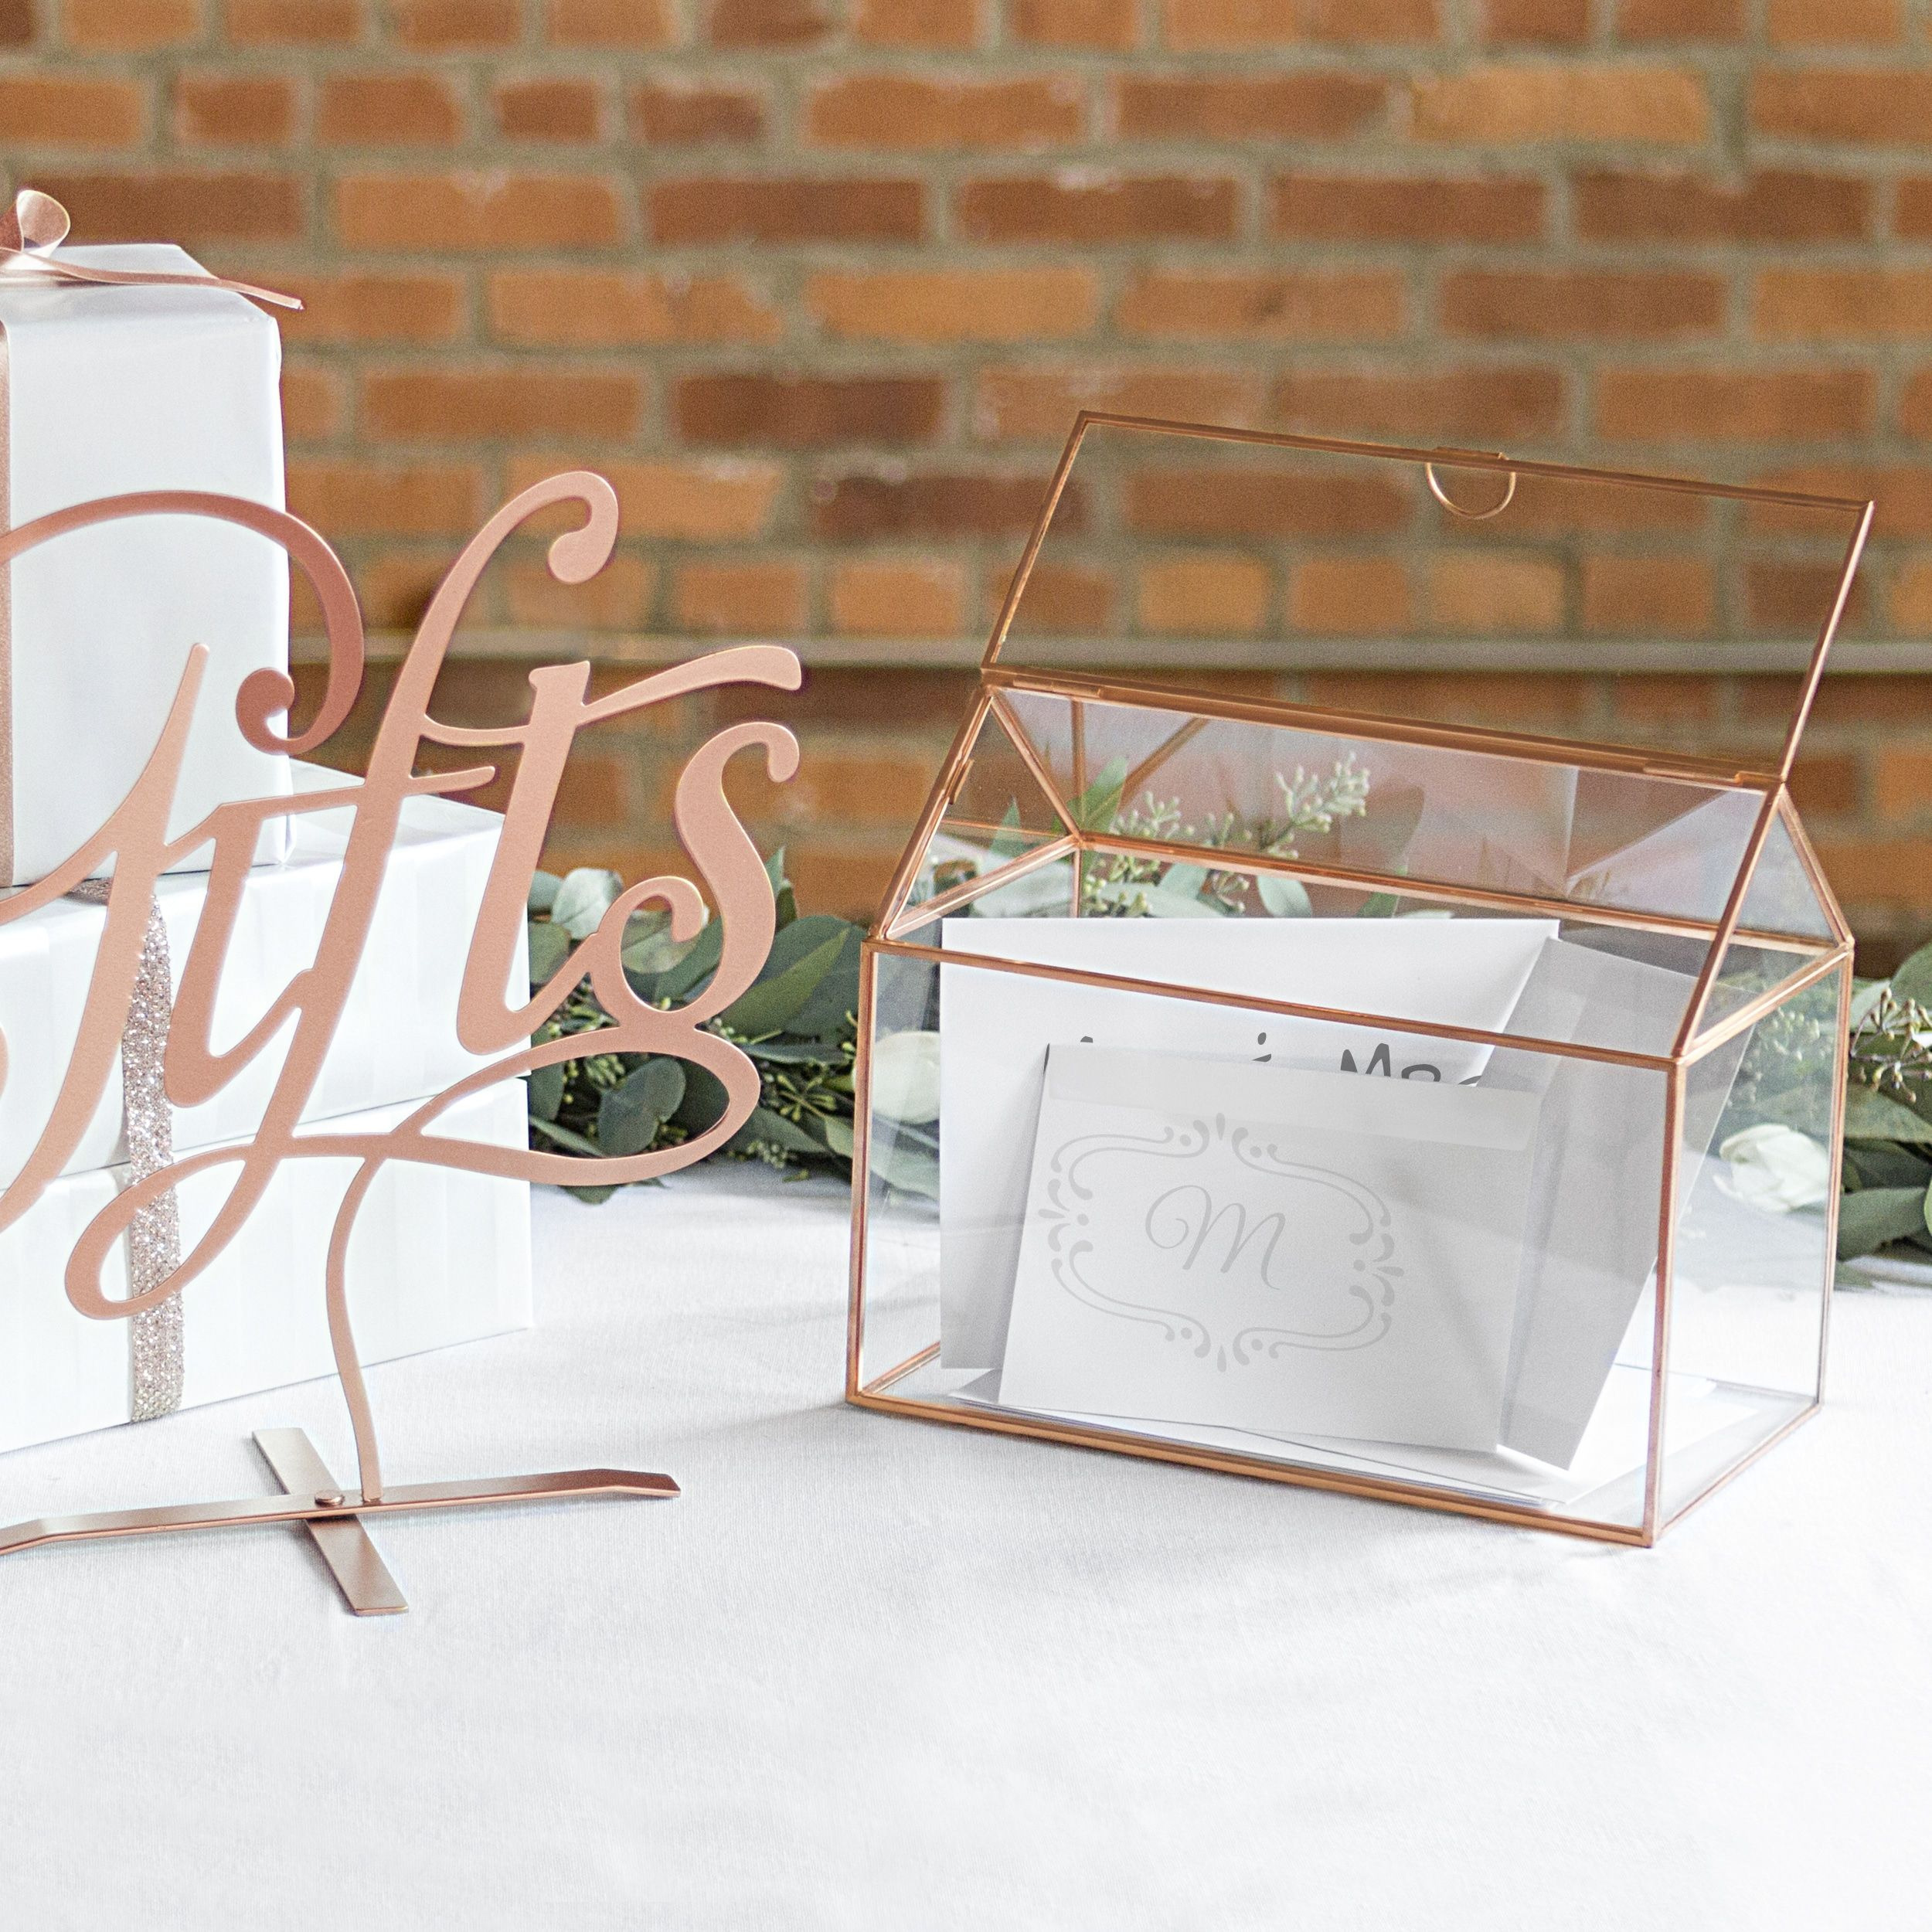 Personalized Glass Terrarium Reception Gift Card Holder Products